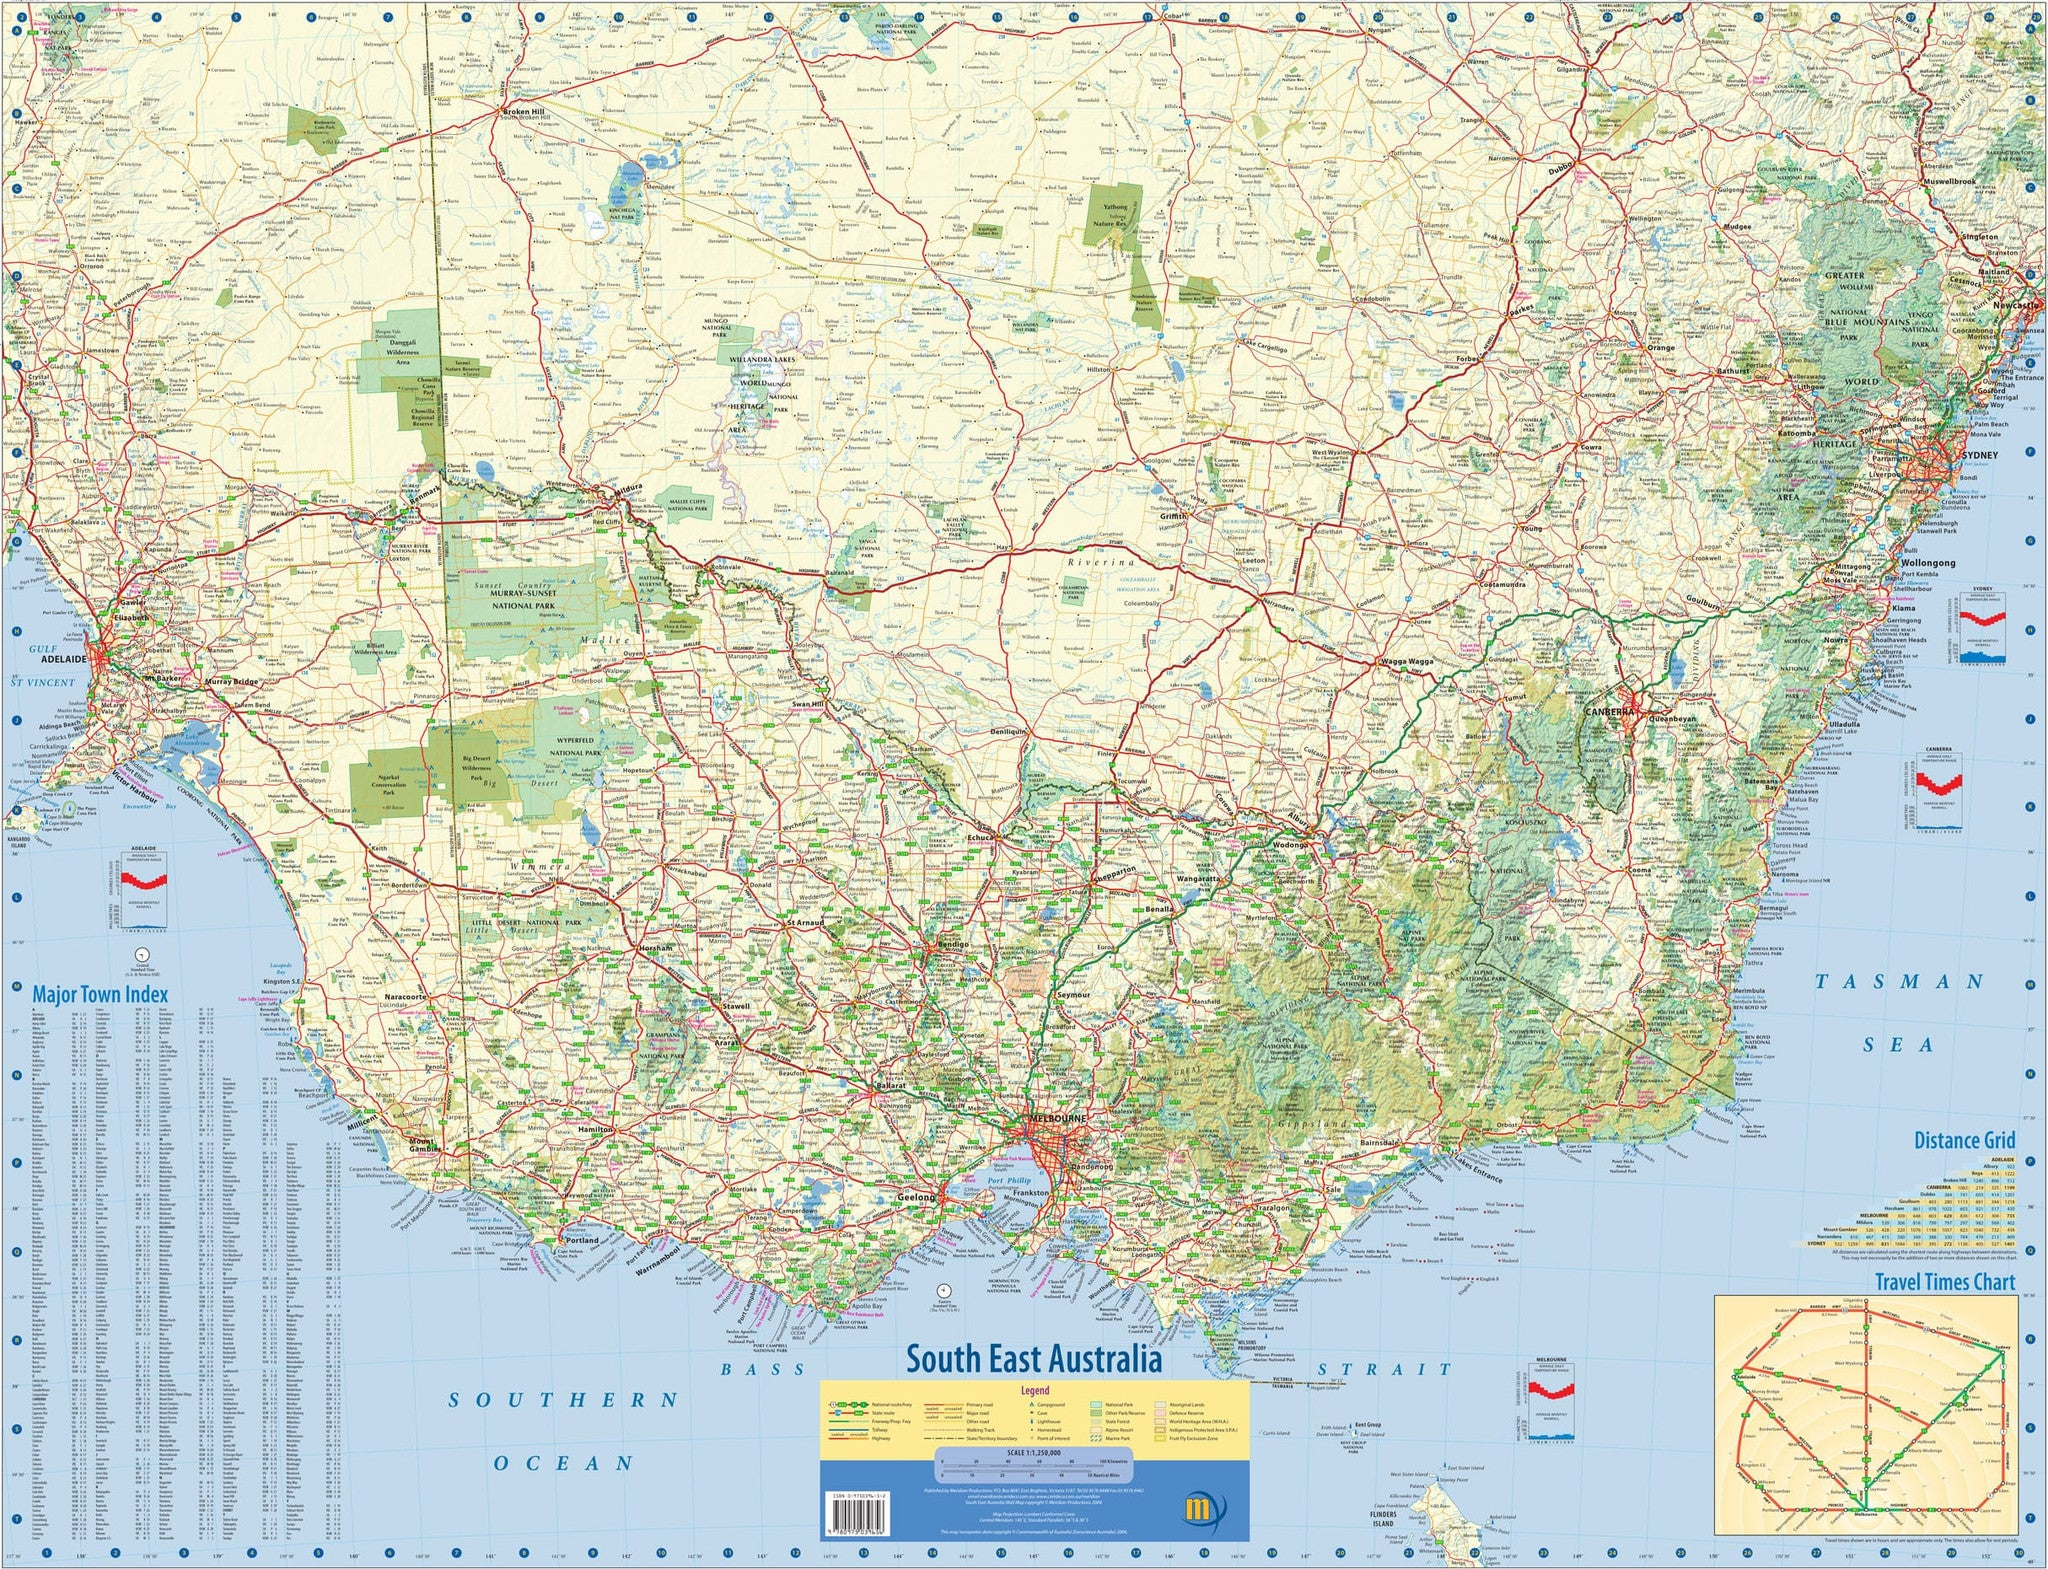 Full Map Of Australia.South East Australia Meridian Wall Map 1005 X 815mm Laminated Wall Map With Hang Rails